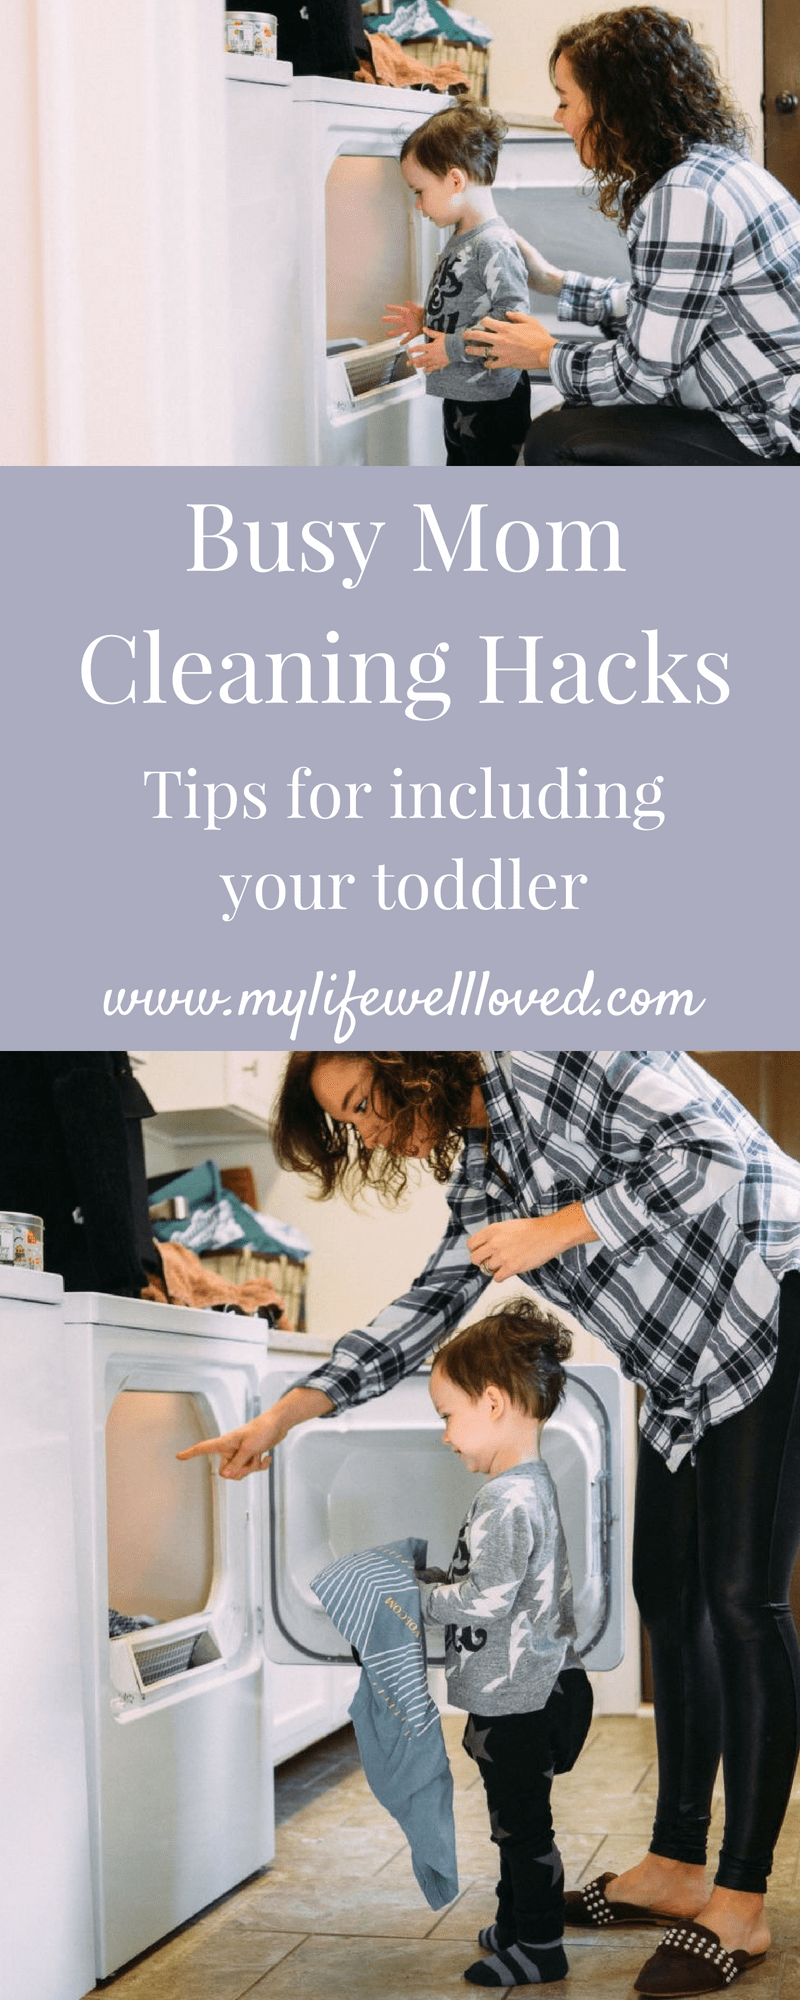 cleaning tips for moms